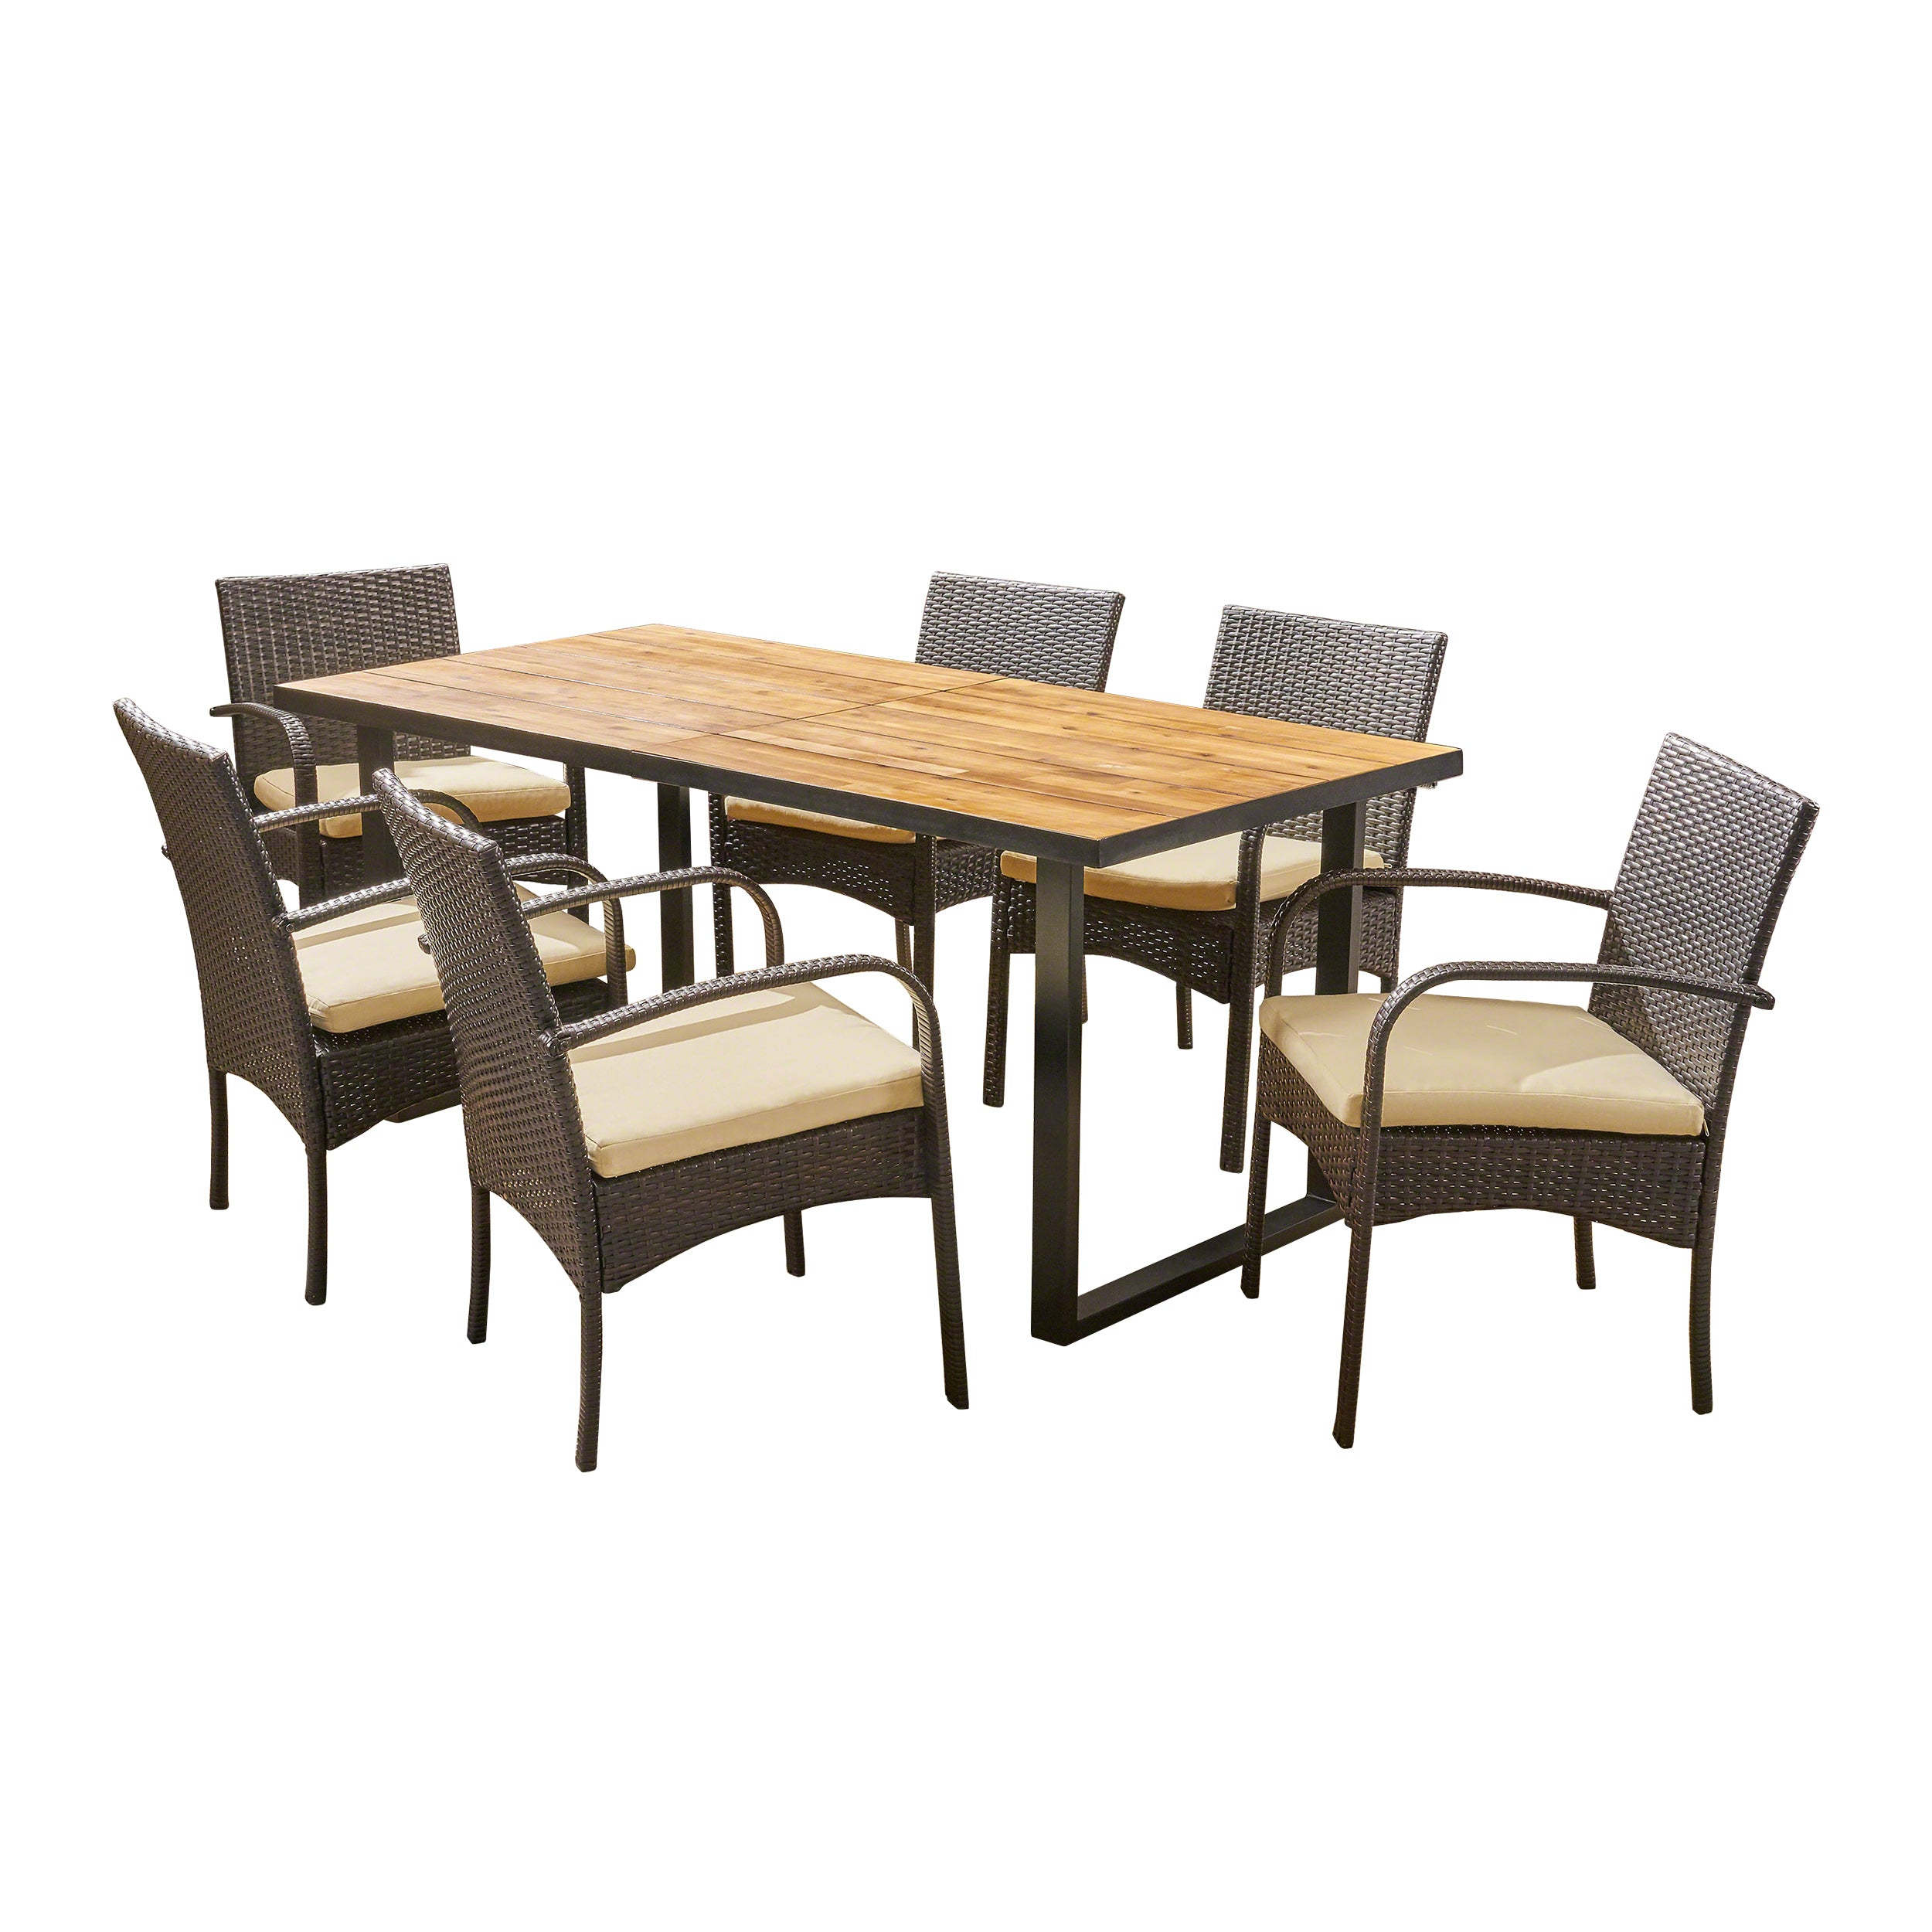 Amenda Outdoor 6 Seater Rectangular Acacia Wood and Wicker Dining Set Teak with Black and Multi Brown with Cream Default Title